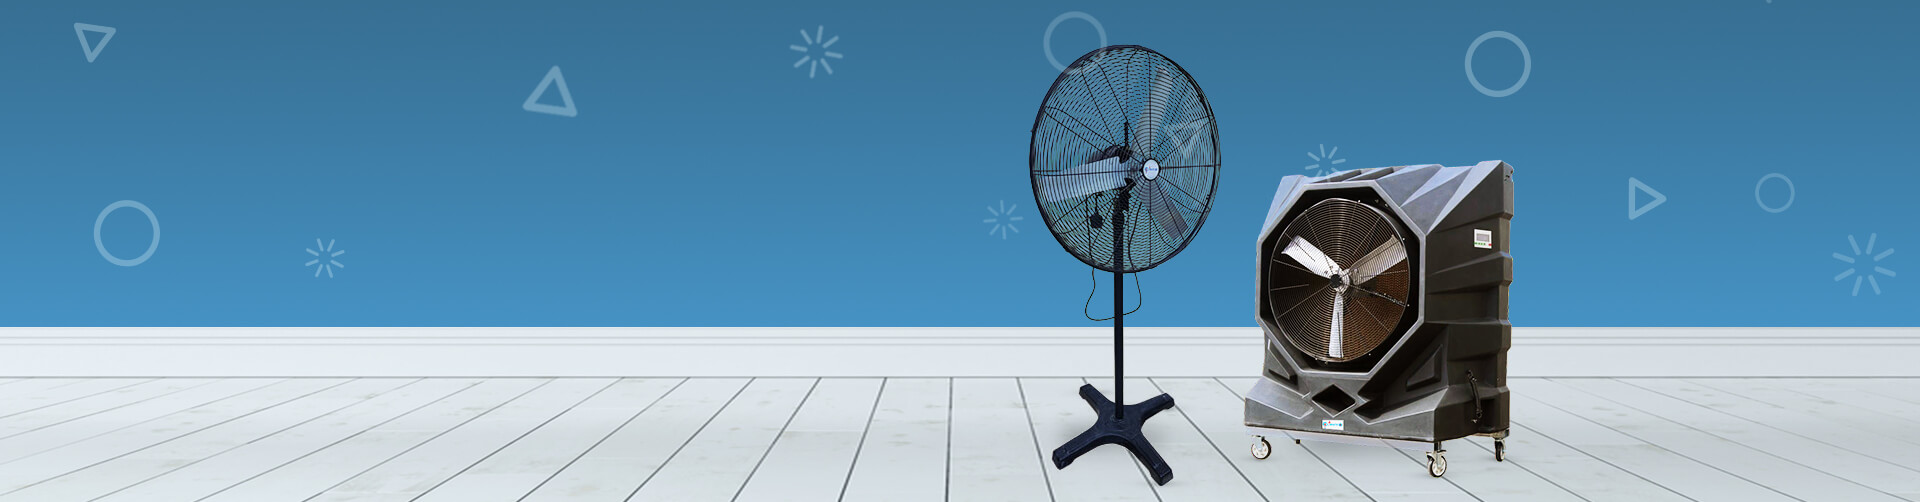 Stay Cool with Portable Cooling Fans from Rental Joy